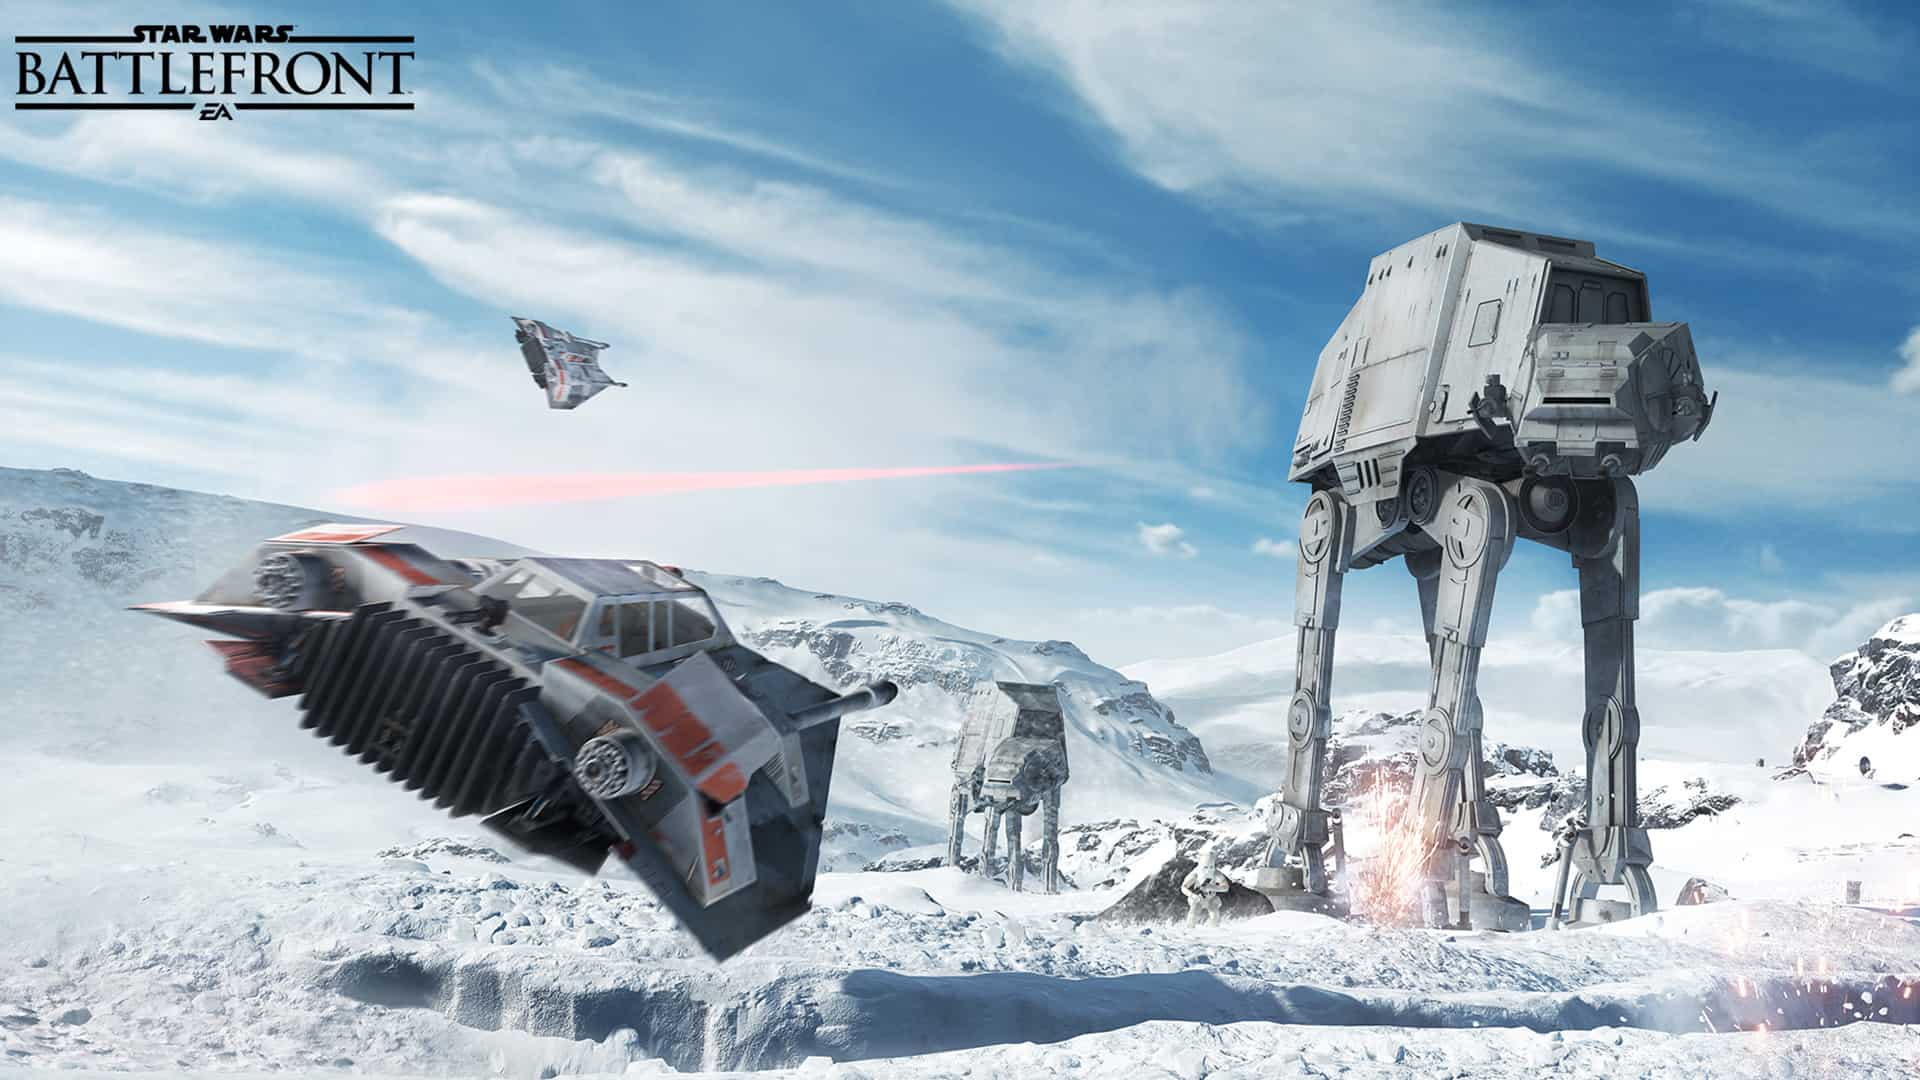 Star Wars Battlefront - EA/ DICE